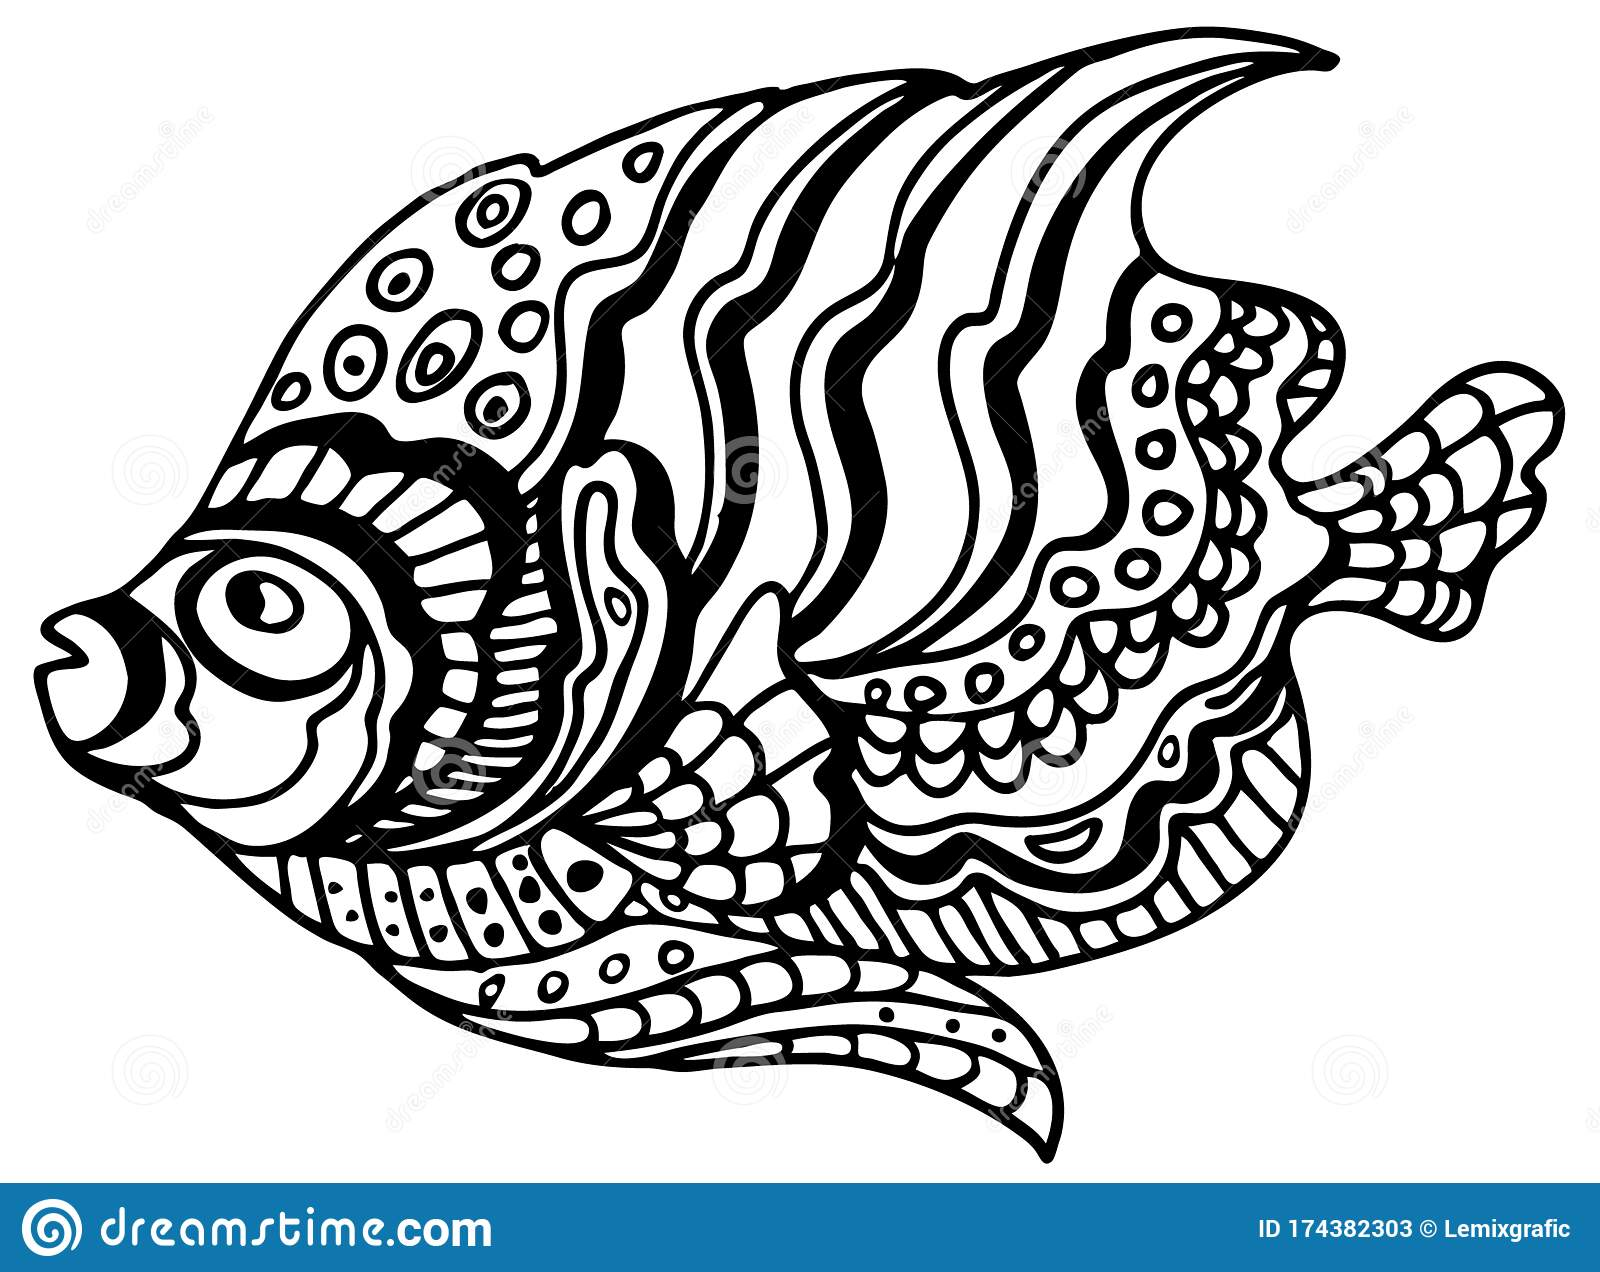 Tropical Fish Coloring Page Black And White Underwater World Anti Stress Coloring For Adult And Children Vector Illustration Stock Vector Illustration Of Antistress Design 174382303